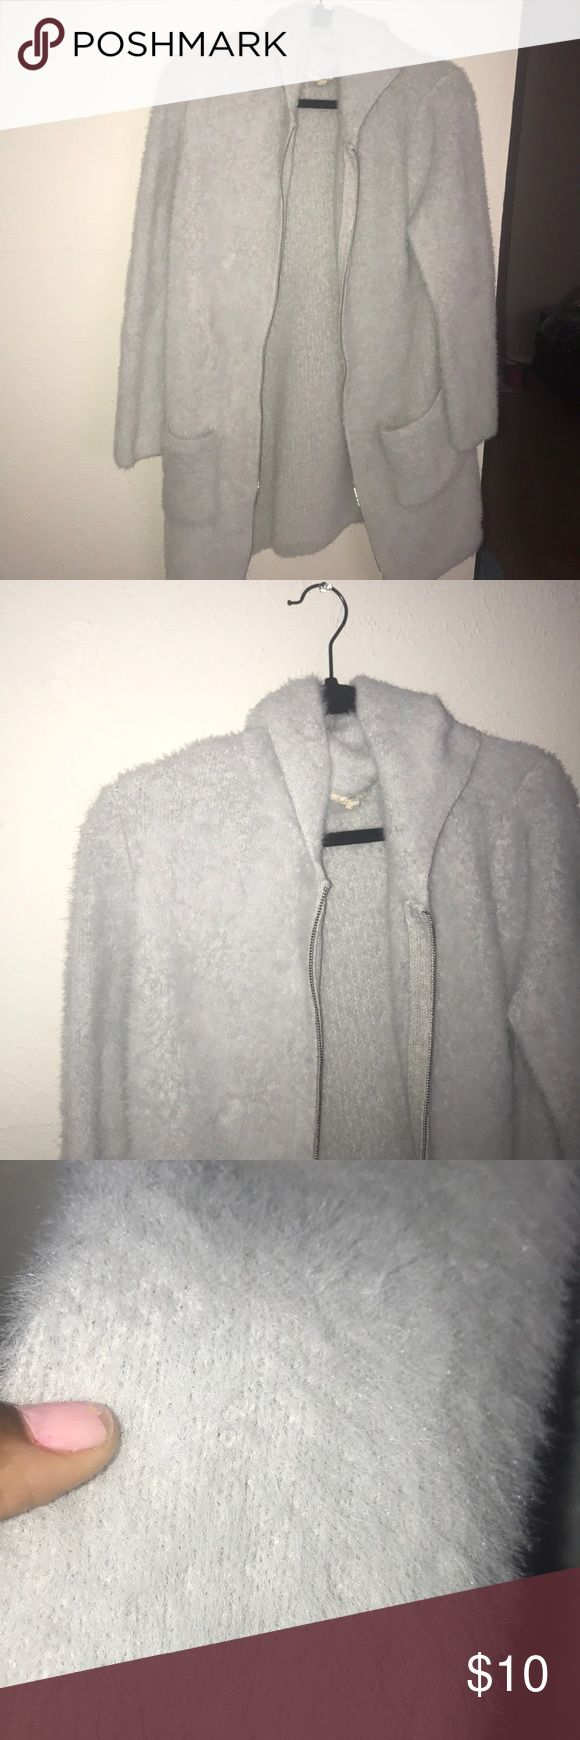 Light grey Sweater Faux fur material light grey sweater with hood Sweaters Cardigans